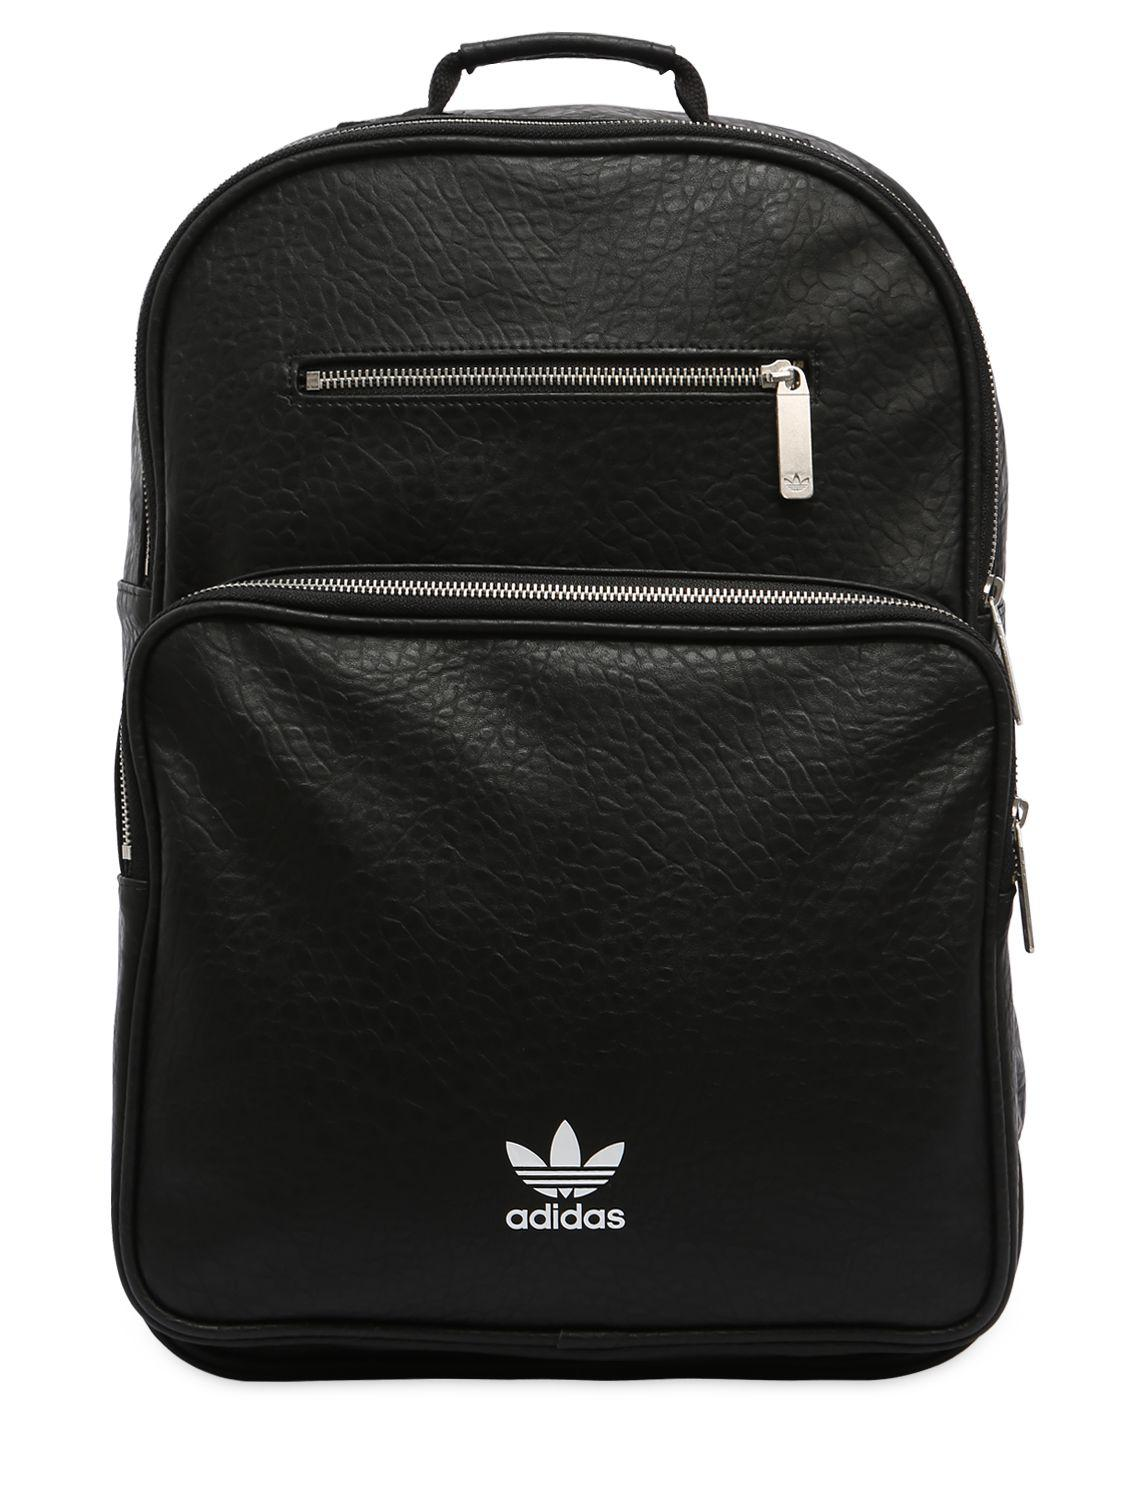 adidas Originals Ac F Bp Classic Faux Leather Backpack in